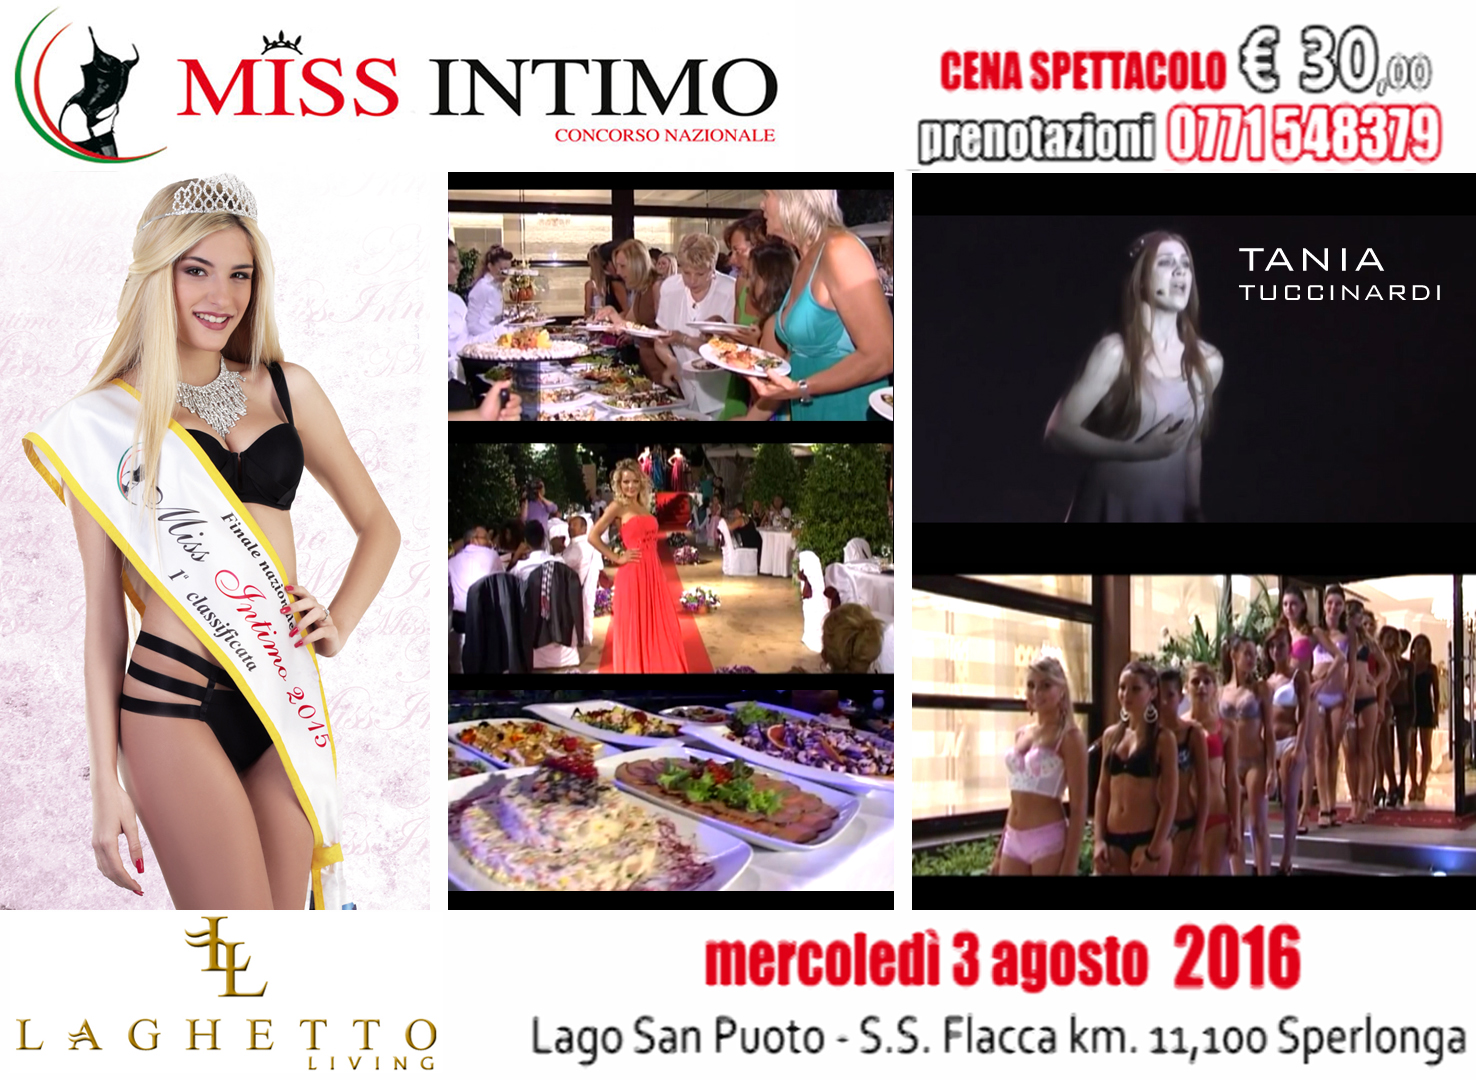 SLIDE EVENTO MISS INTIMO 2016 LAGHETTO LIVING